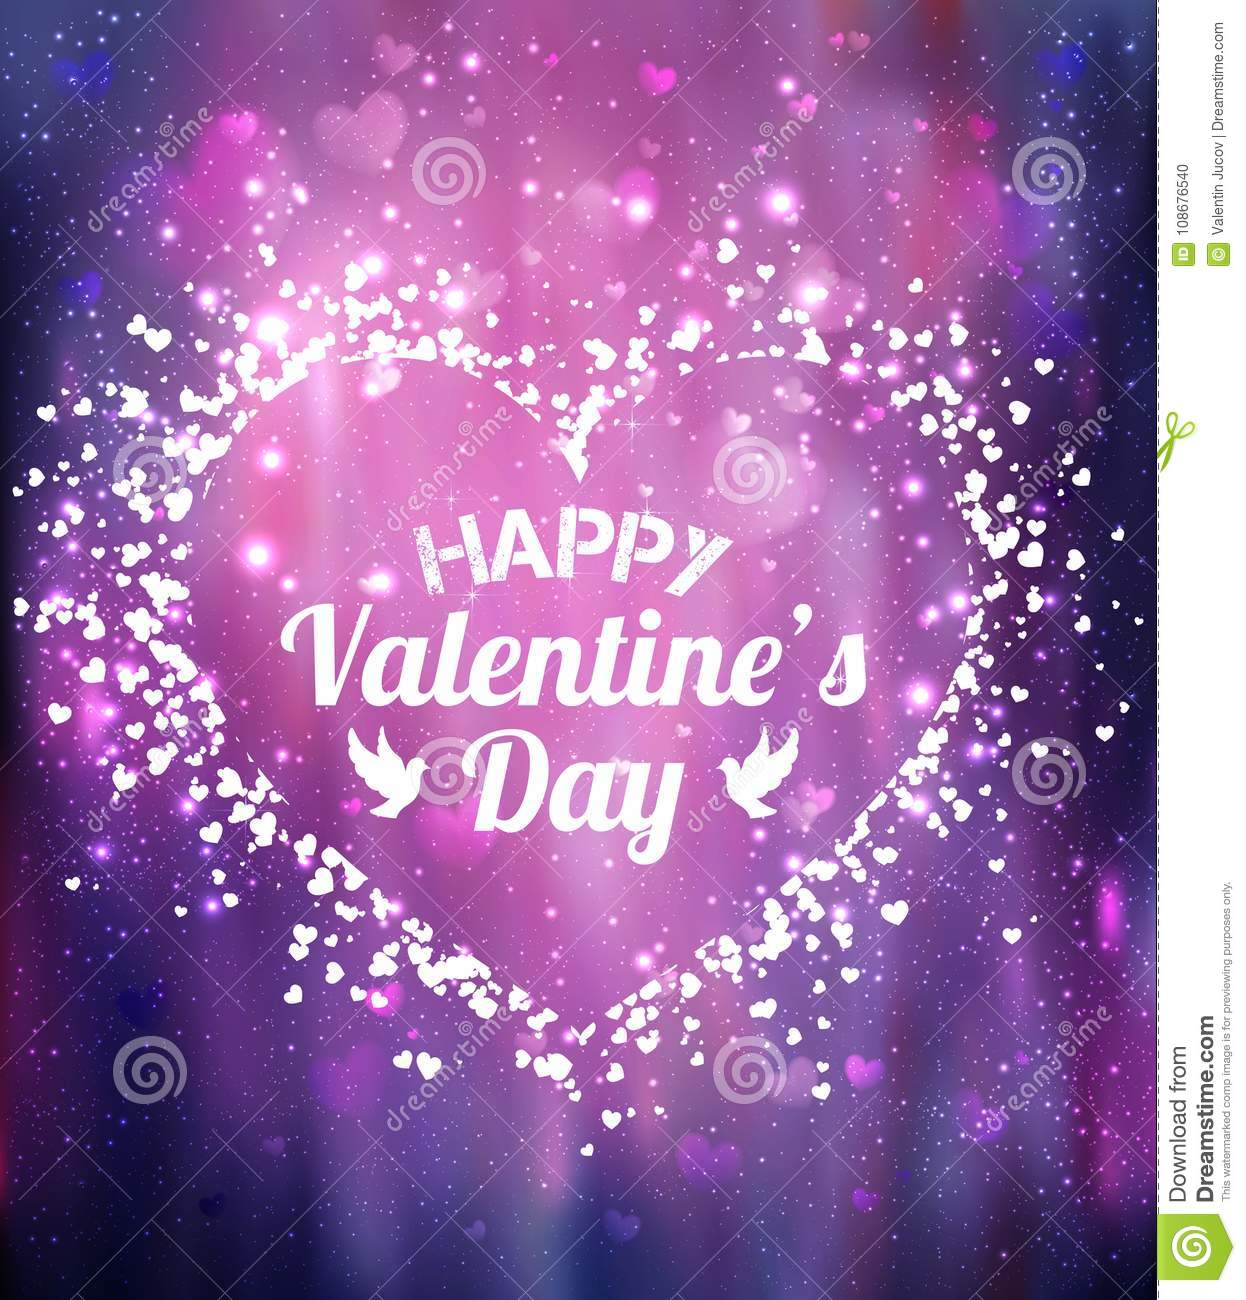 Happy Valentines Day greeting card. I Love You. 14 February